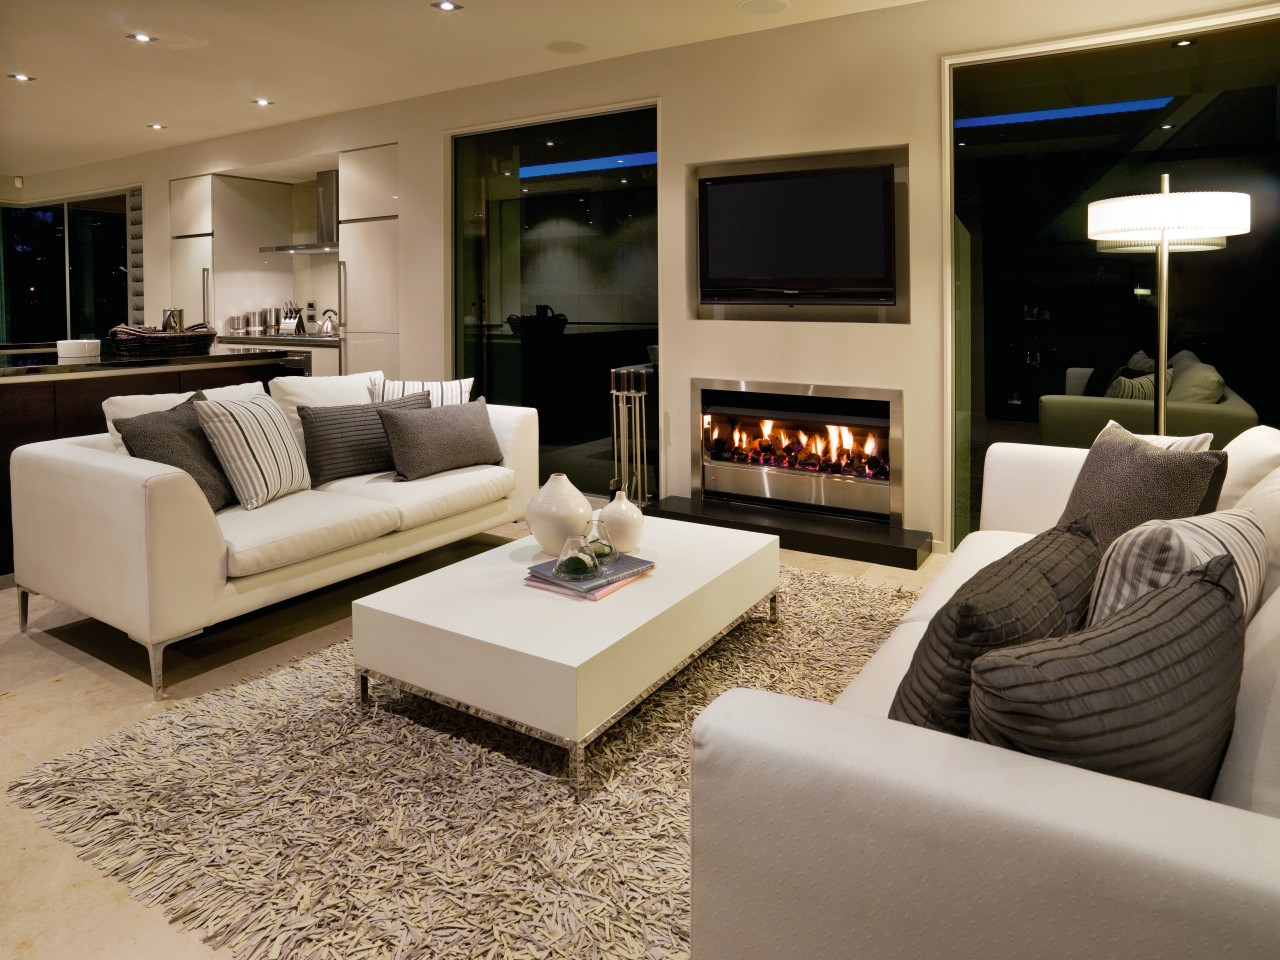 A view of a home custom built by couch, floor, flooring, furniture, hearth, home, interior design, living room, room, brown, gray